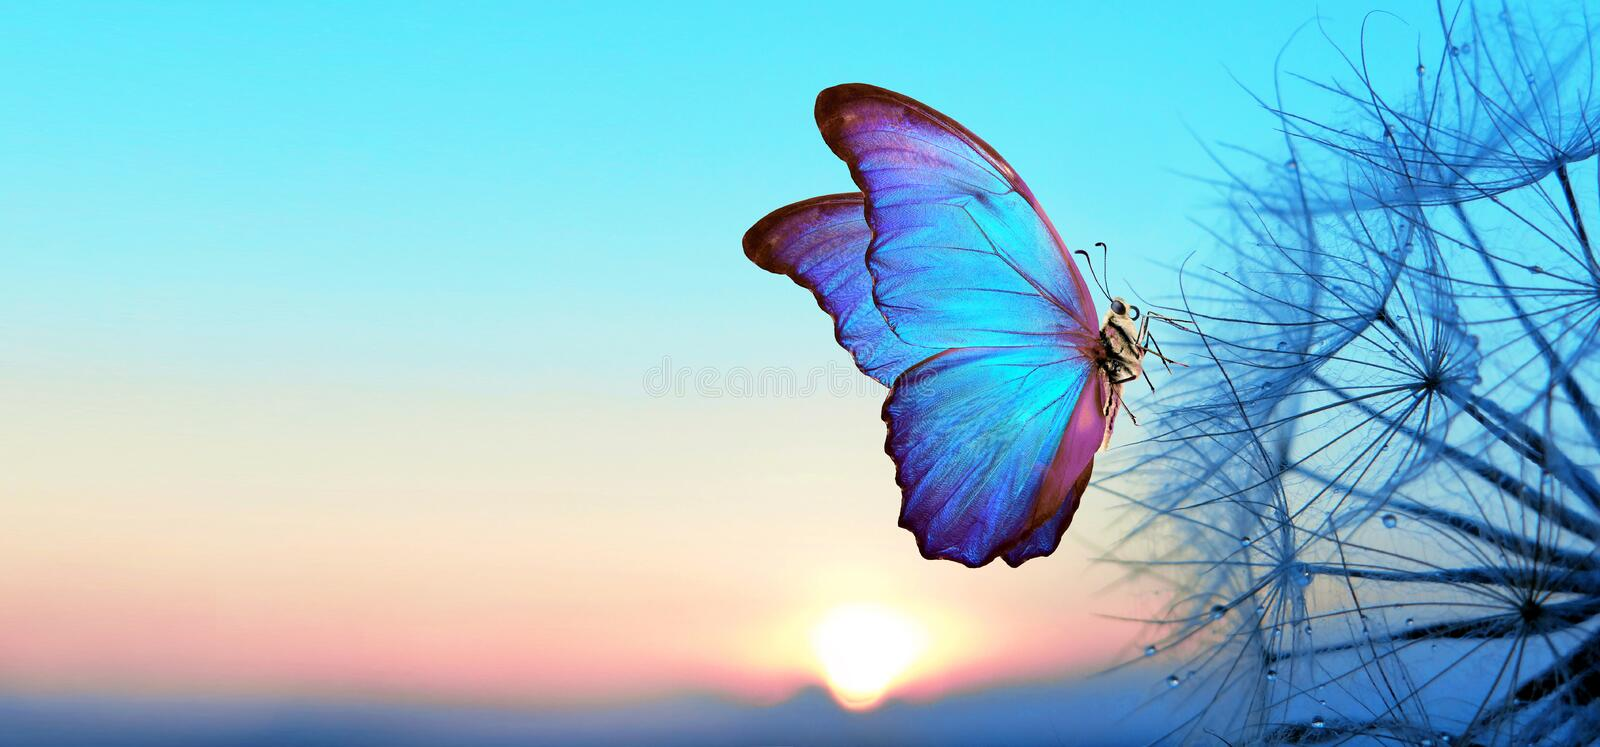 Natural pastel background. Morpho butterfly and dandelion. Seeds of a dandelion flower in droplets of dew on a background of sunri. Se royalty free stock photo